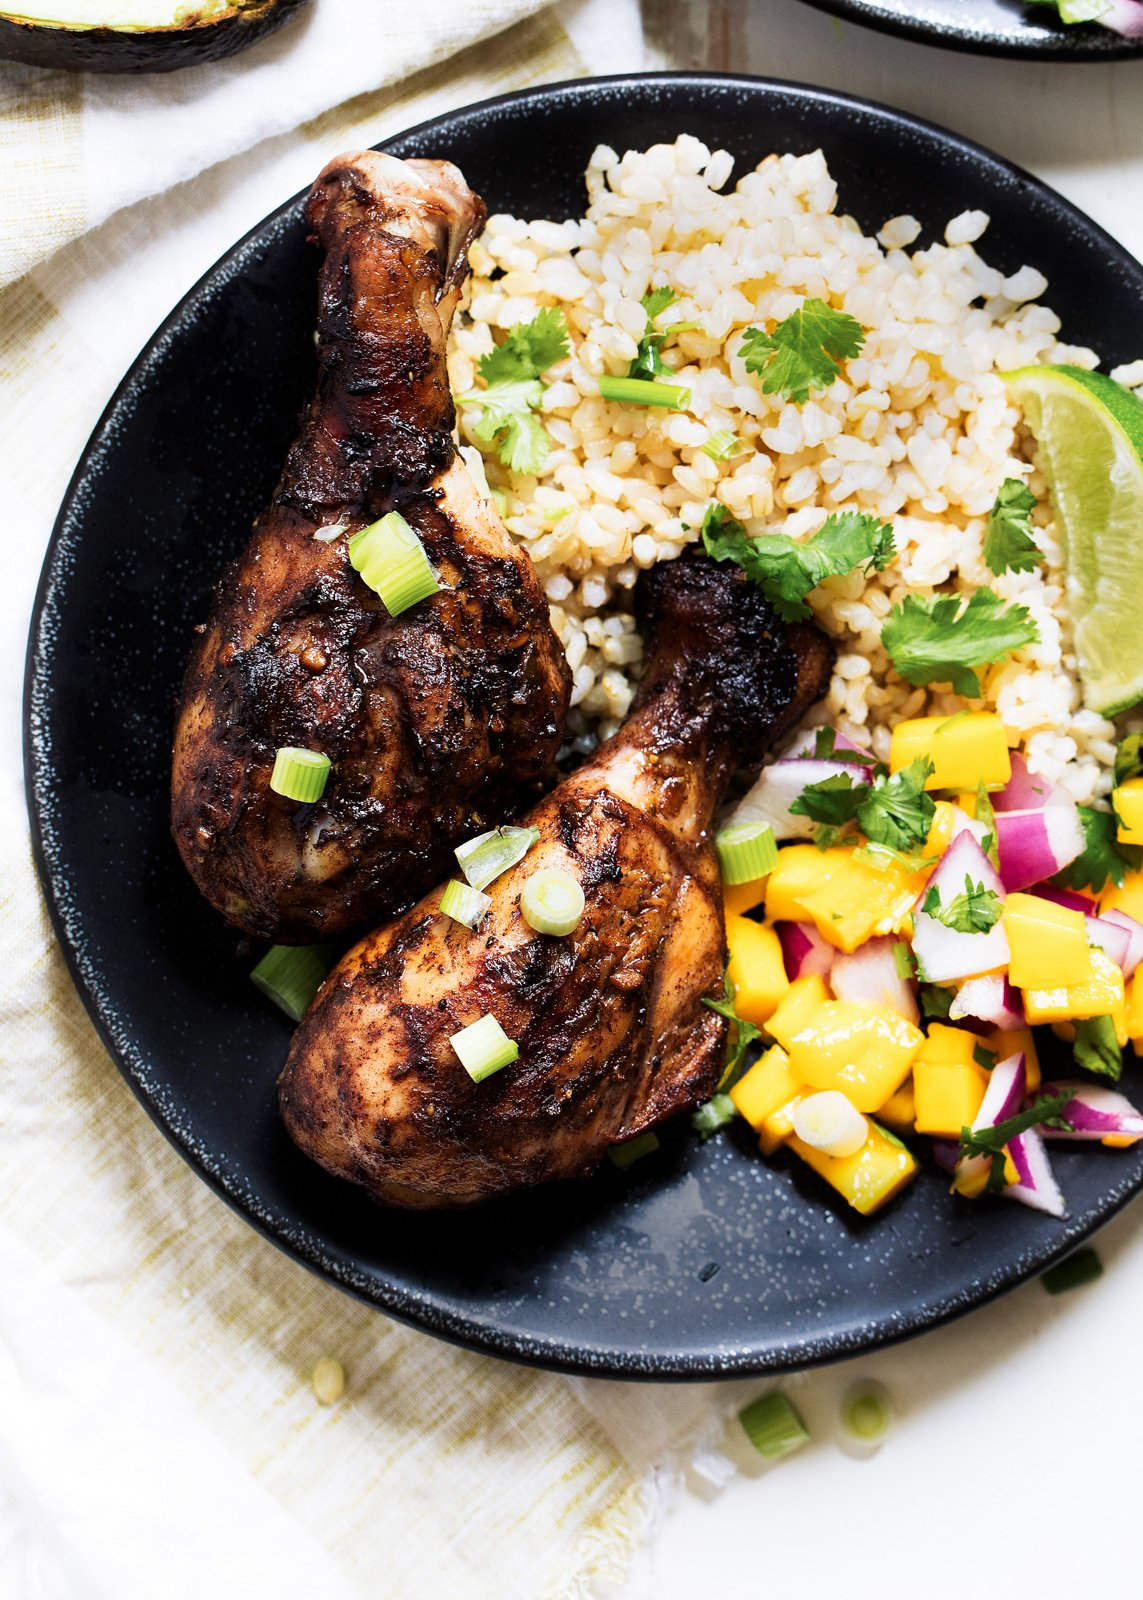 Juicy grilled jerk chicken drumsticks with a delicious Caribbean Rice & sweet mango salsa. The perfect healthy grilling recipe for summertime!